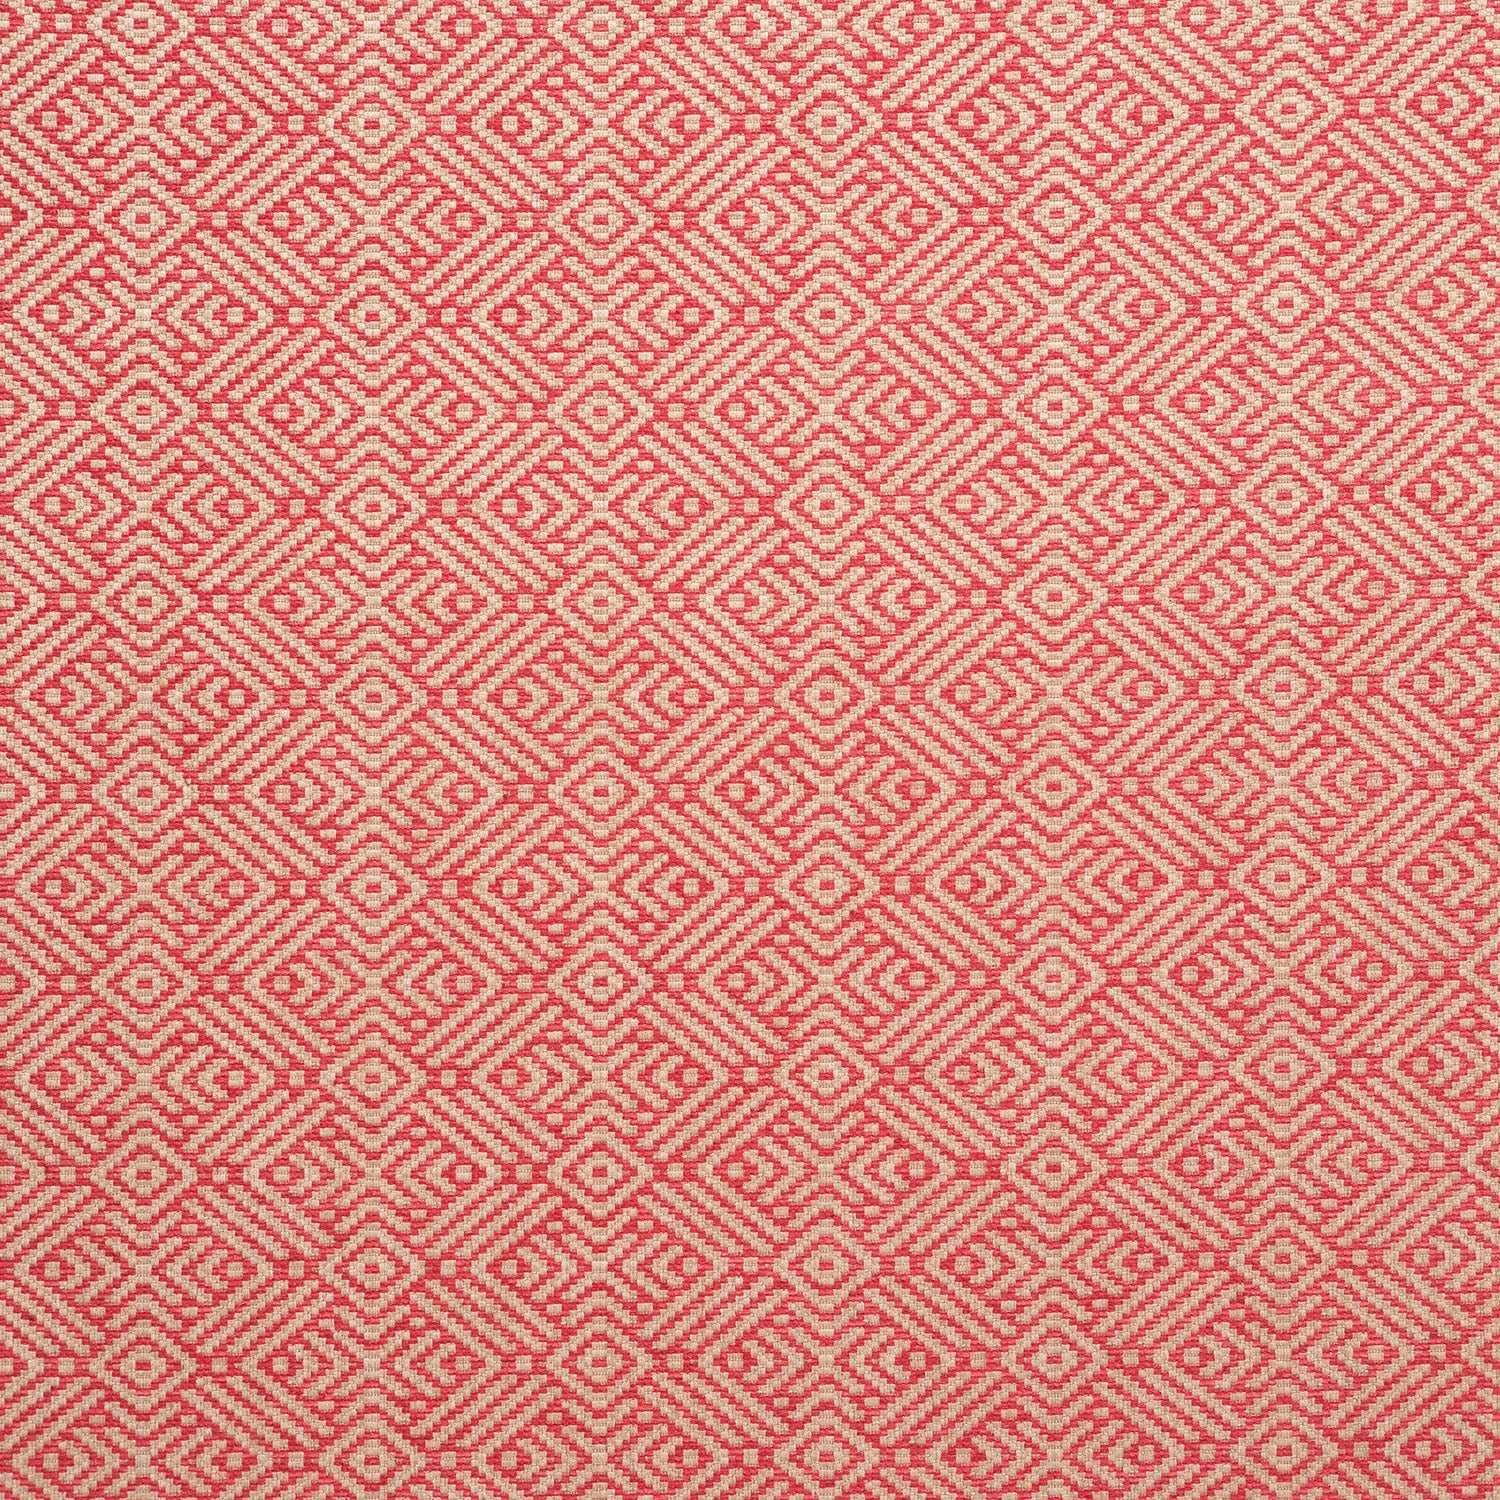 Fabric swatch of a pink and neutral geometric weave fabric for curtains and upholstery